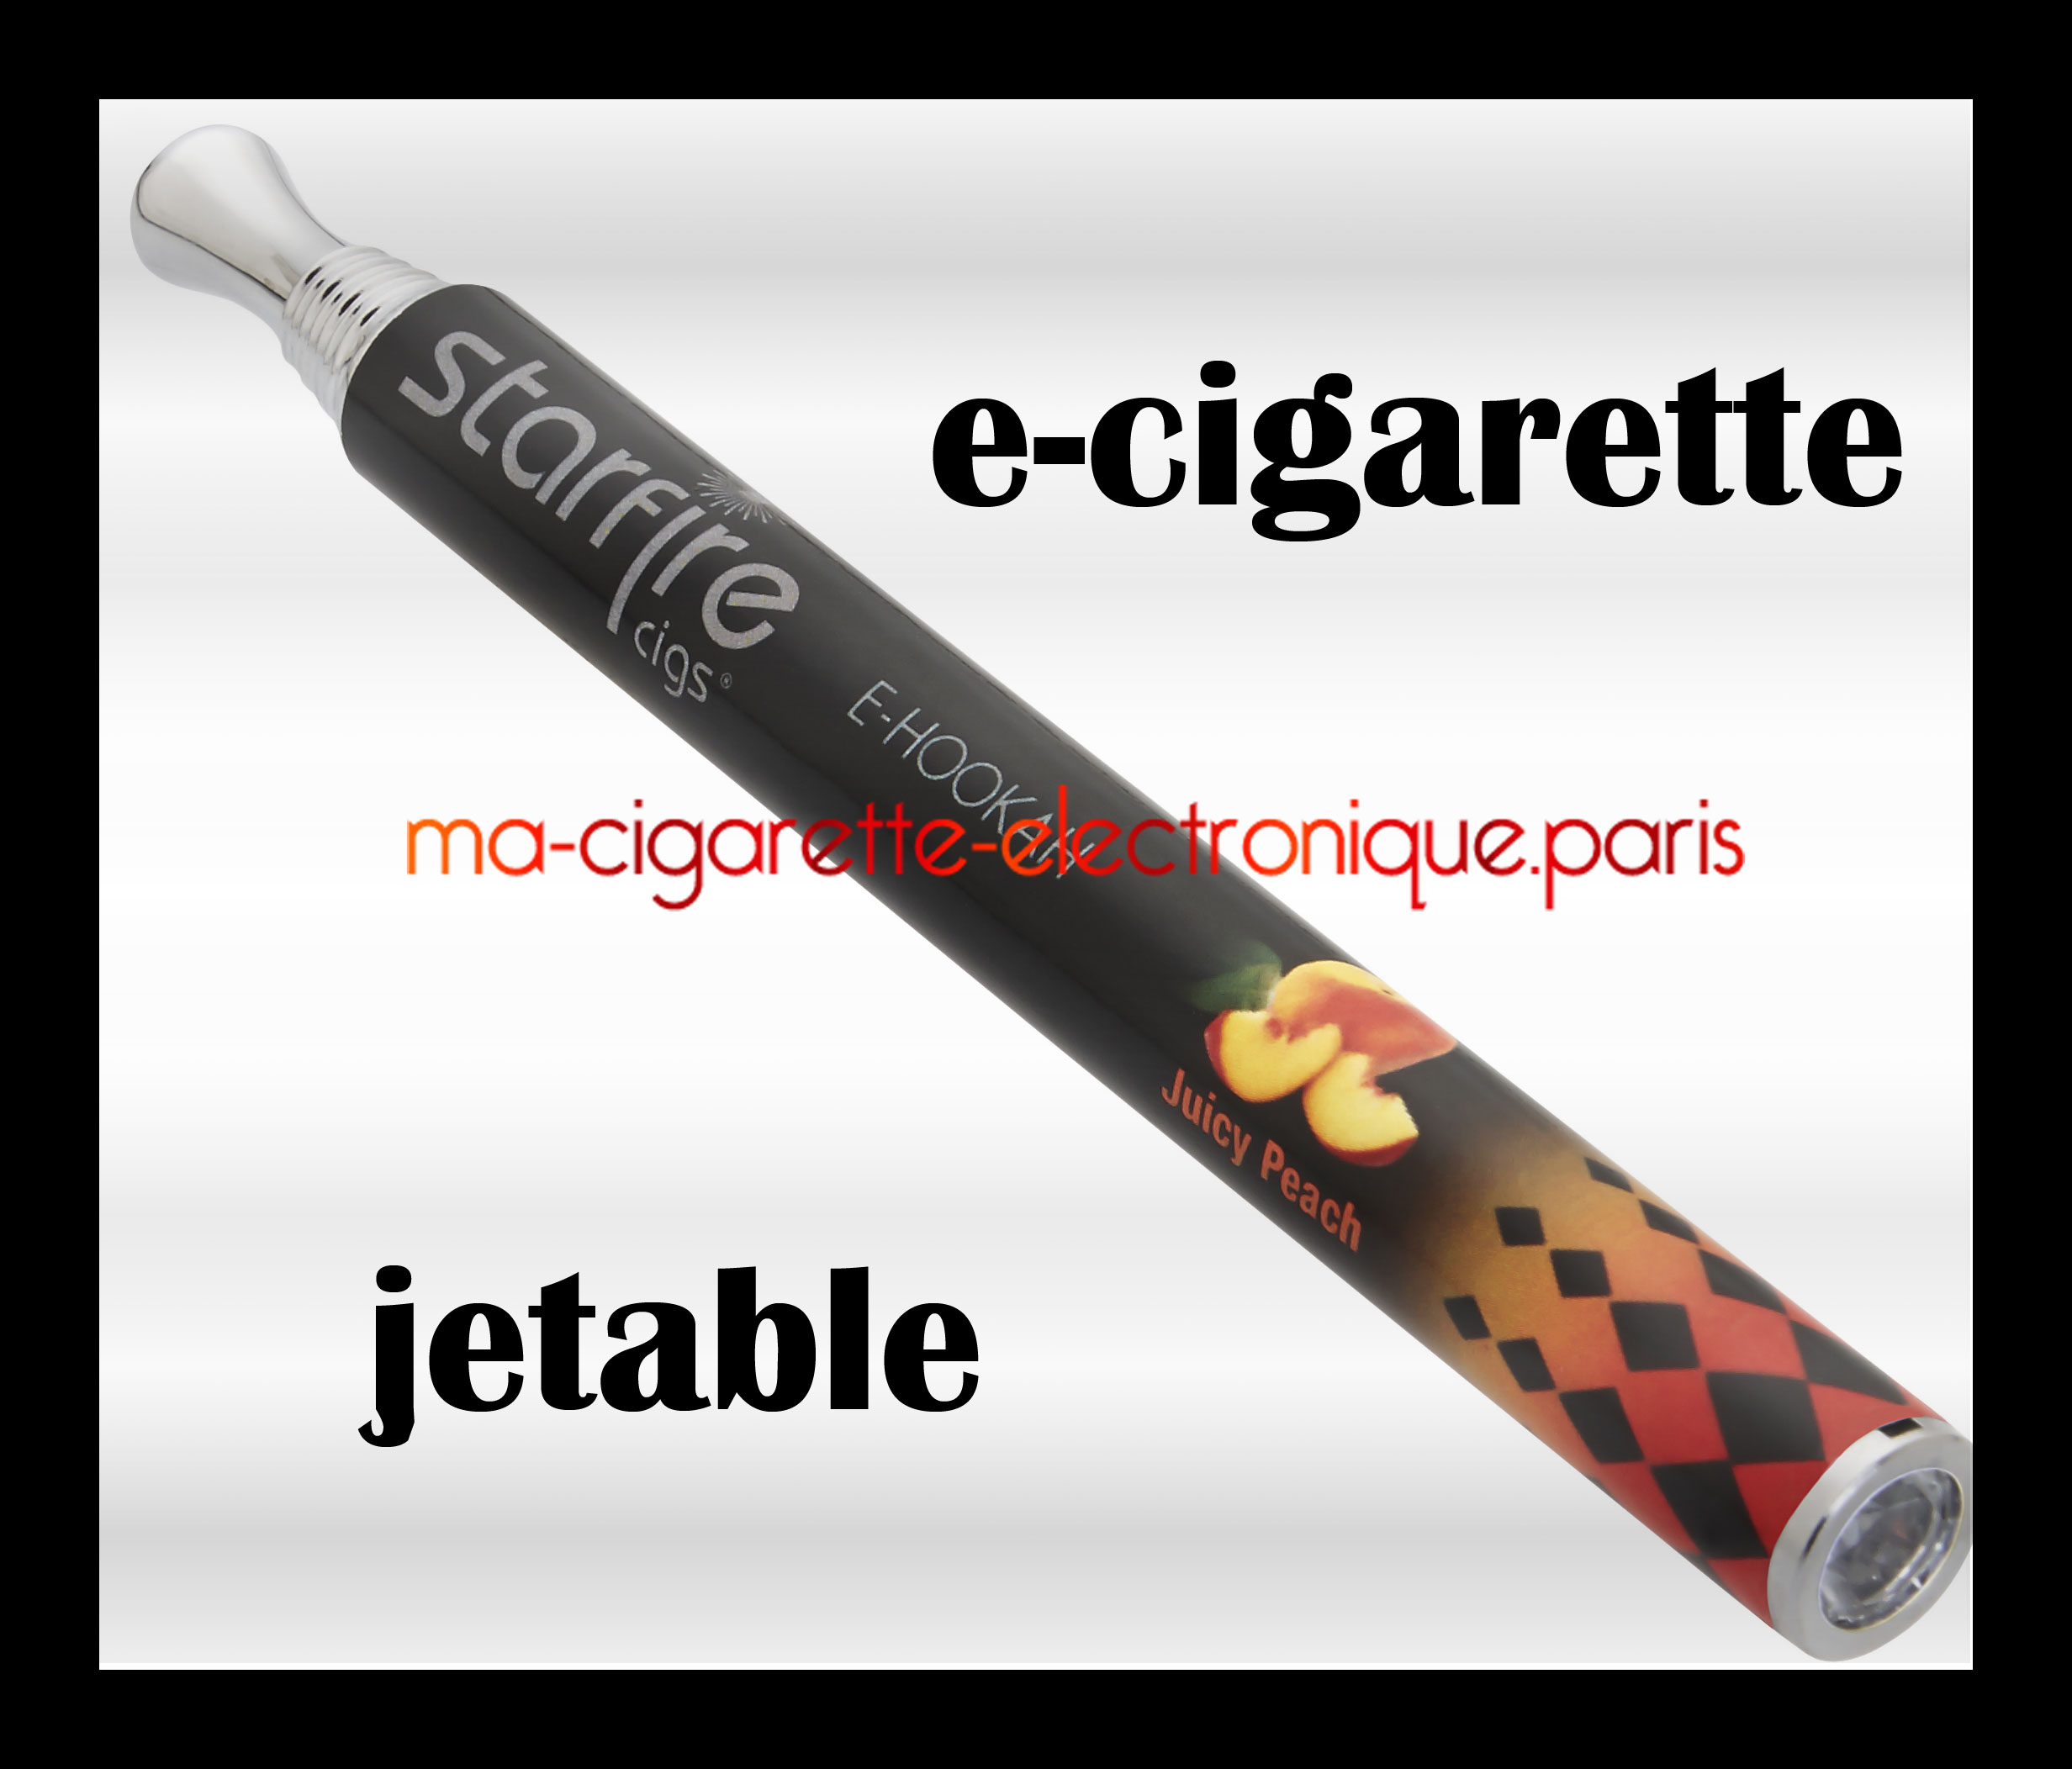 E Cigarette Jetable